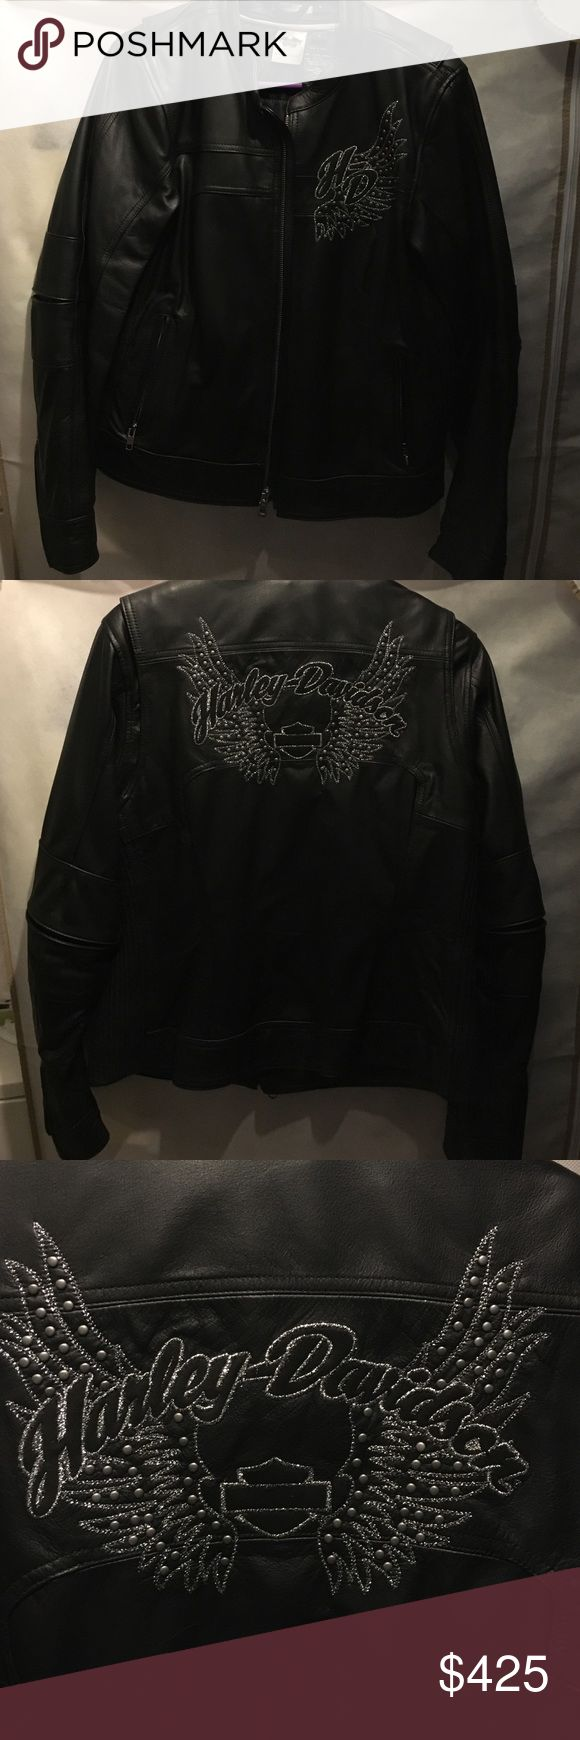 Authentic leather ladies Harley-Davidson jacket Only wore 1x for an hour. No flaws. Embroidery is in silver stitching. REASONABLE OFFERS ACCEPTED!! Harley-Davidson Jackets & Coats